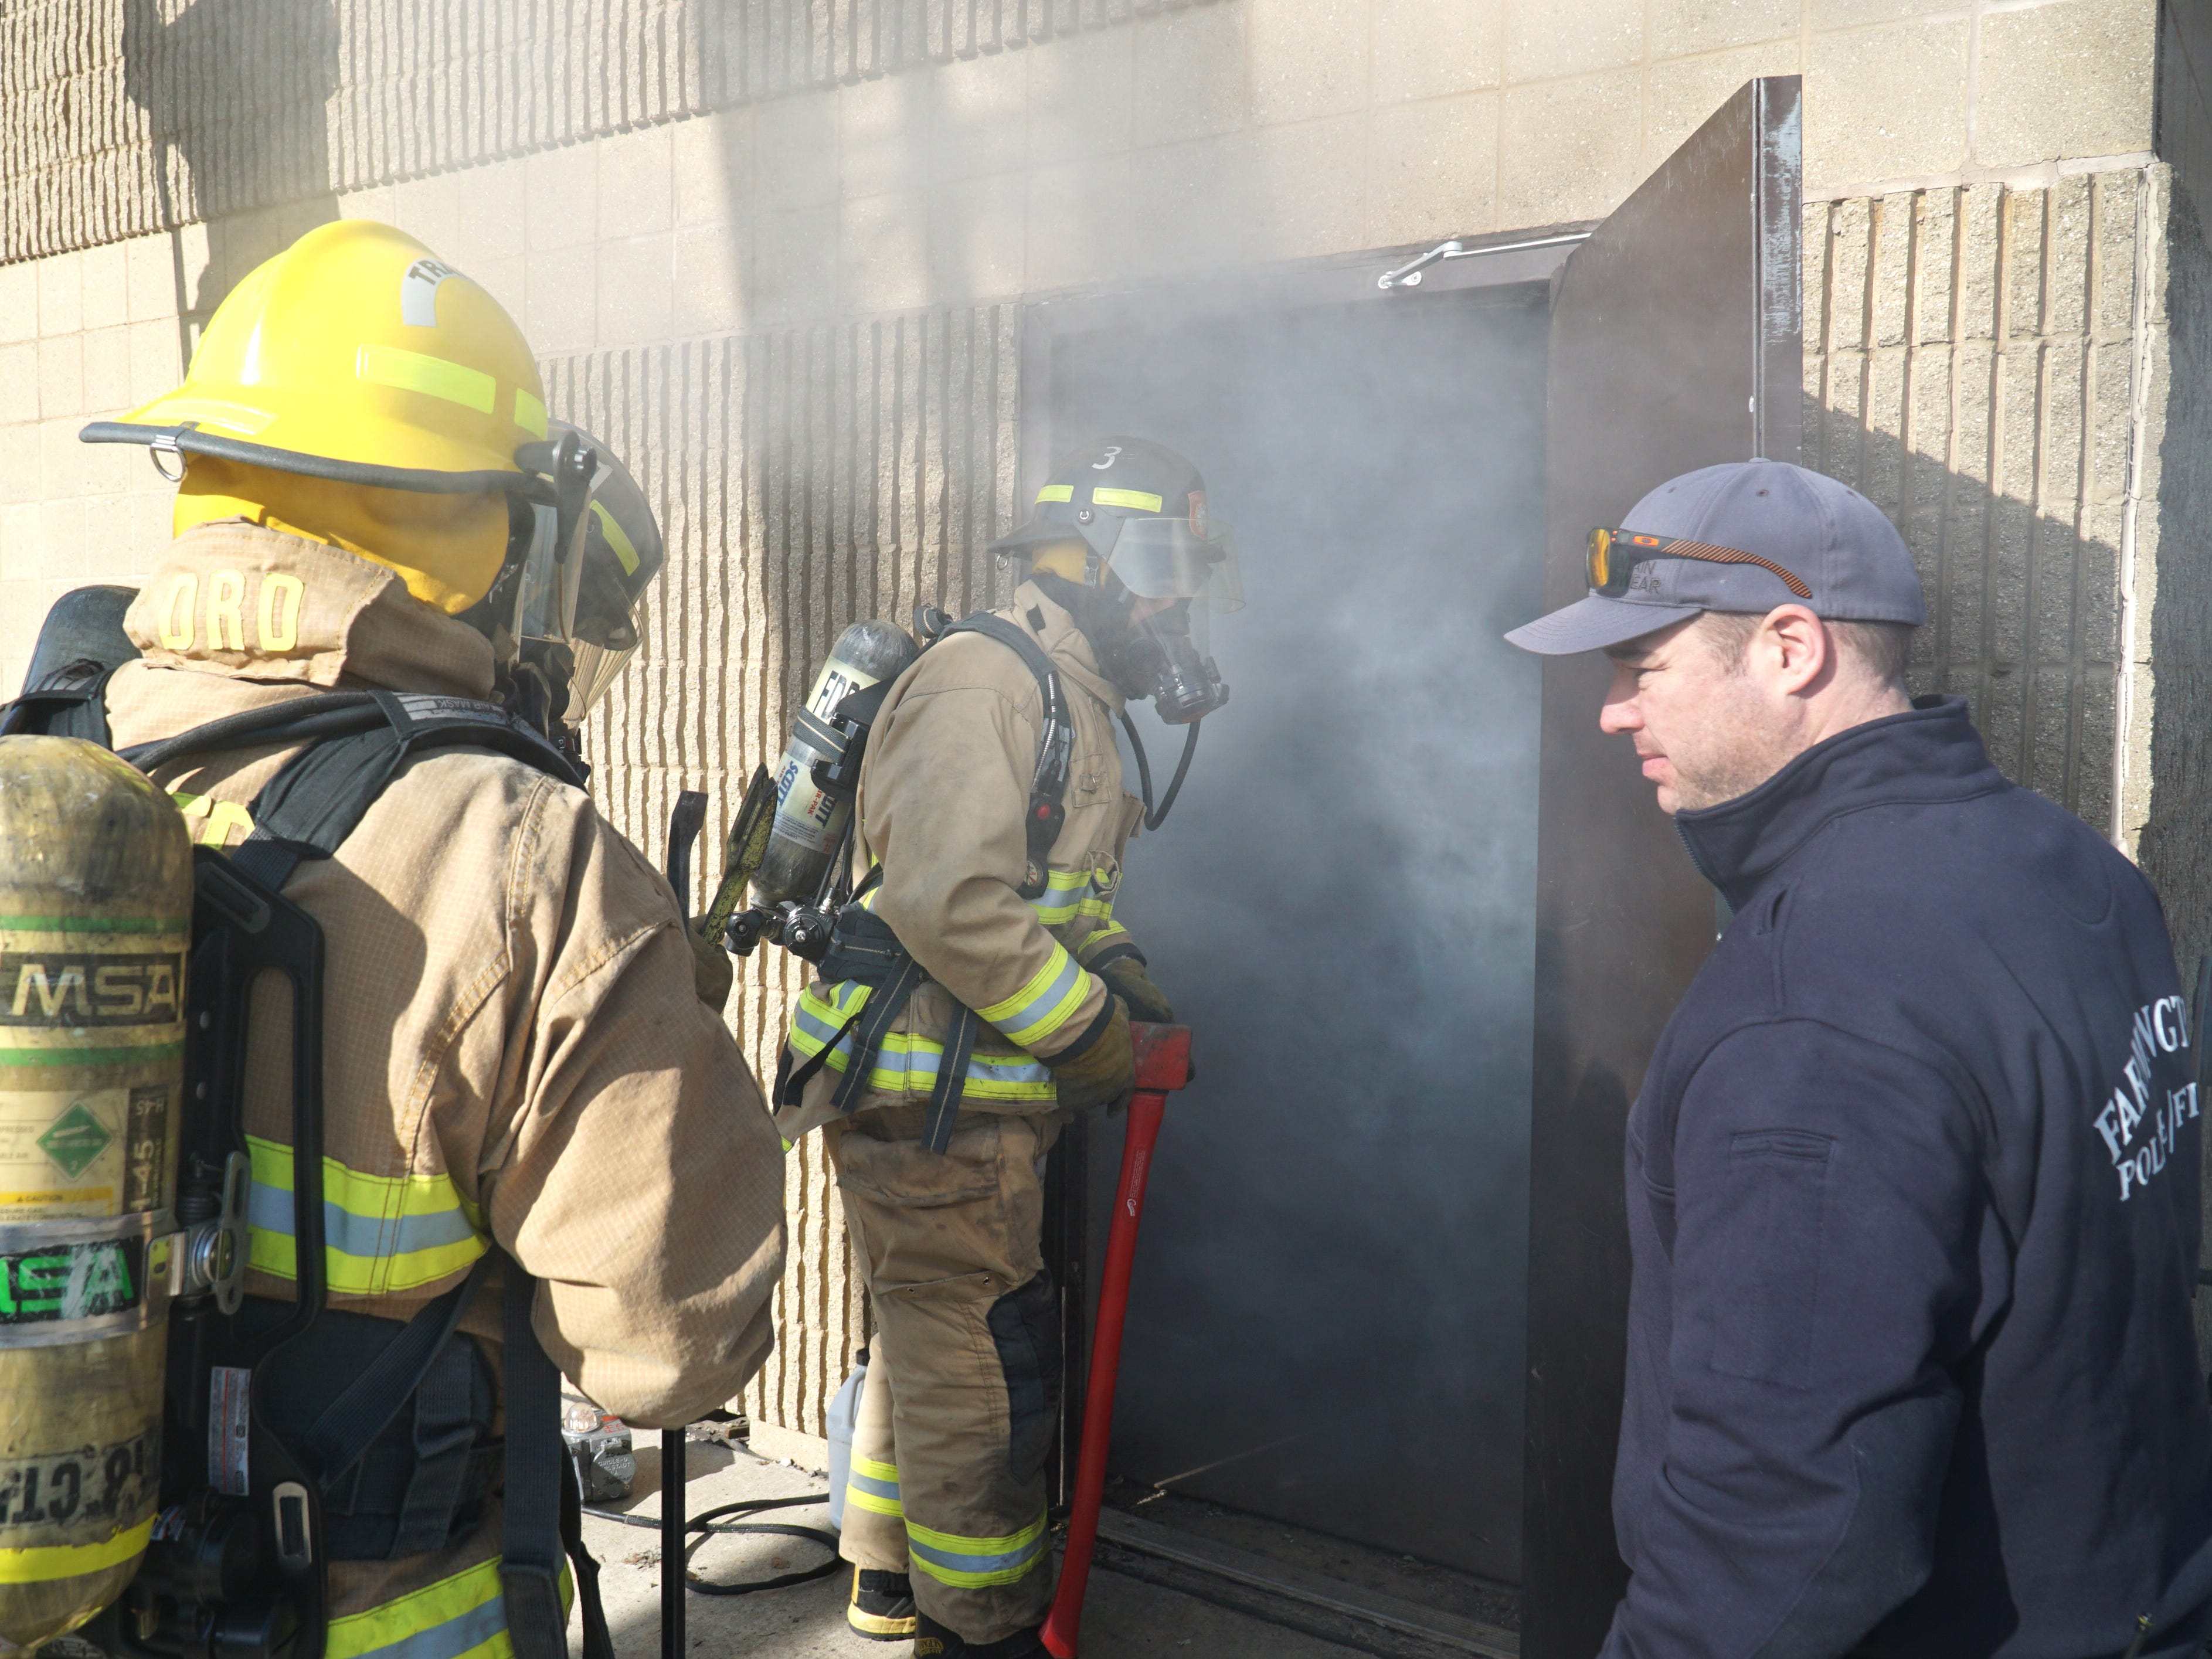 Jim Wren, right, begins to escort trainees into the Farmington Hills DPW smoke-filled fire training house on April 13. Wren will soon become the new Farmington Hills Fire Marshall.